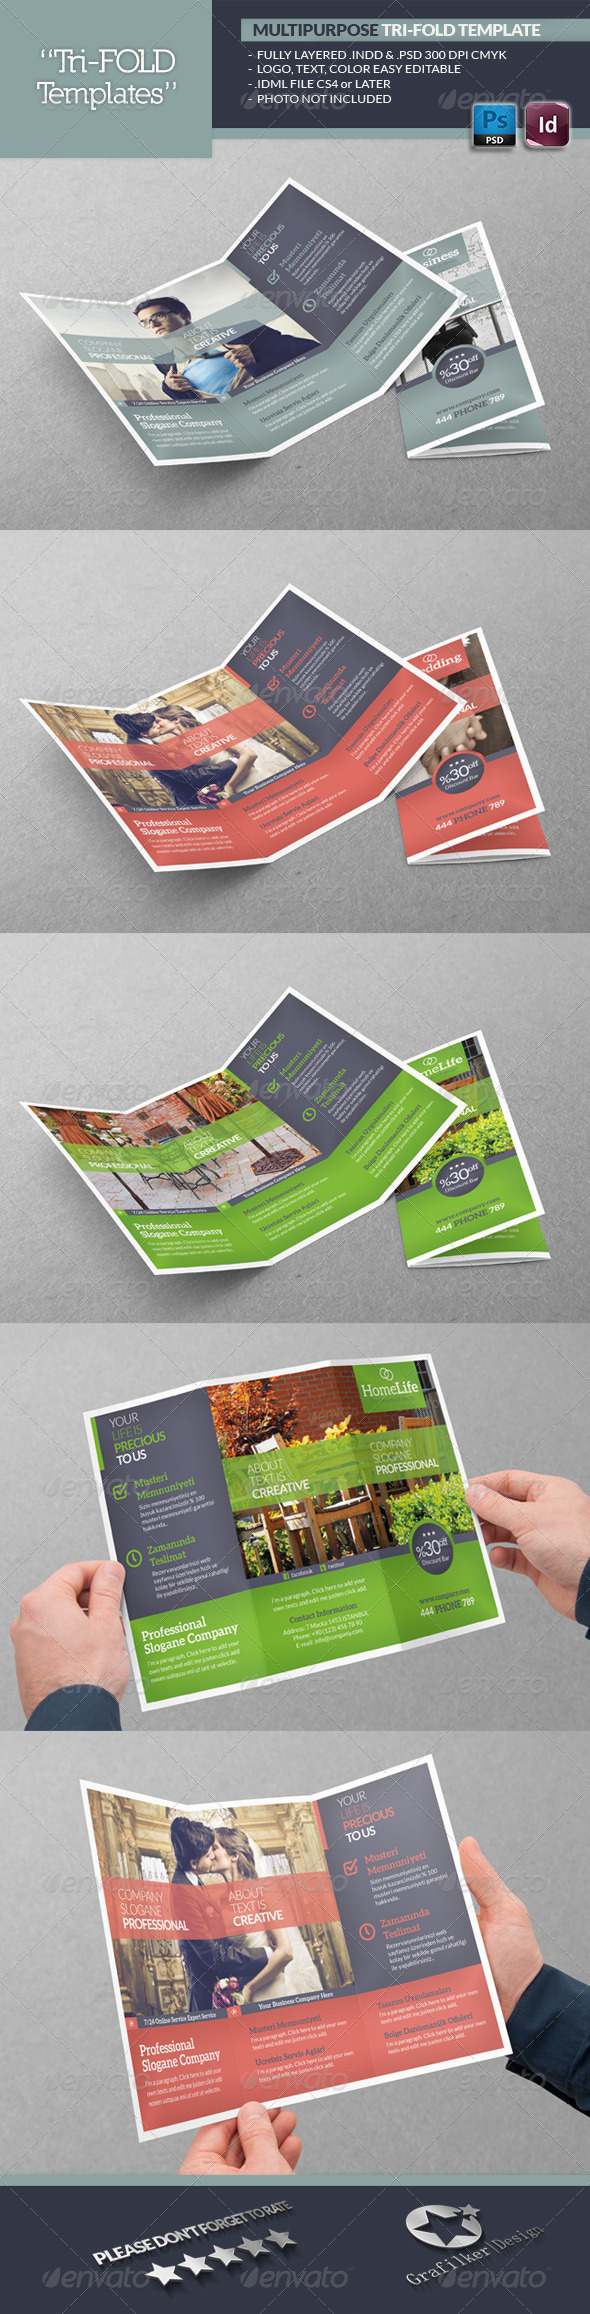 GraphicRiver Multipurpose Tri-Fold Template 5600714